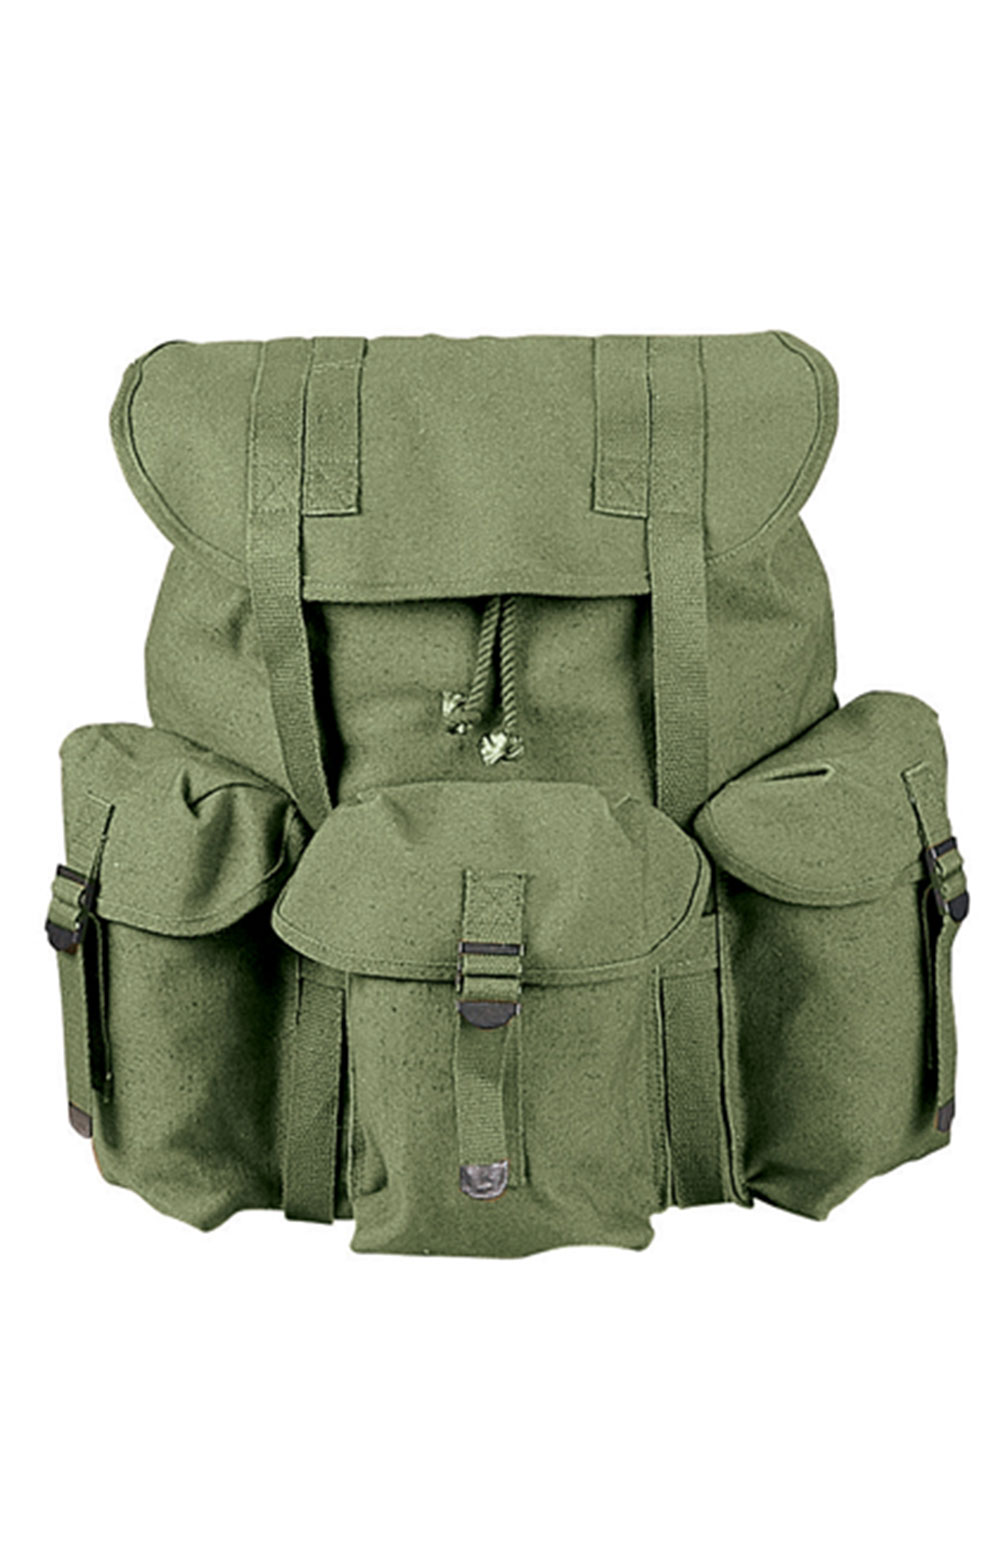 (2487) G.I Style Soft Pack - Olive Drab